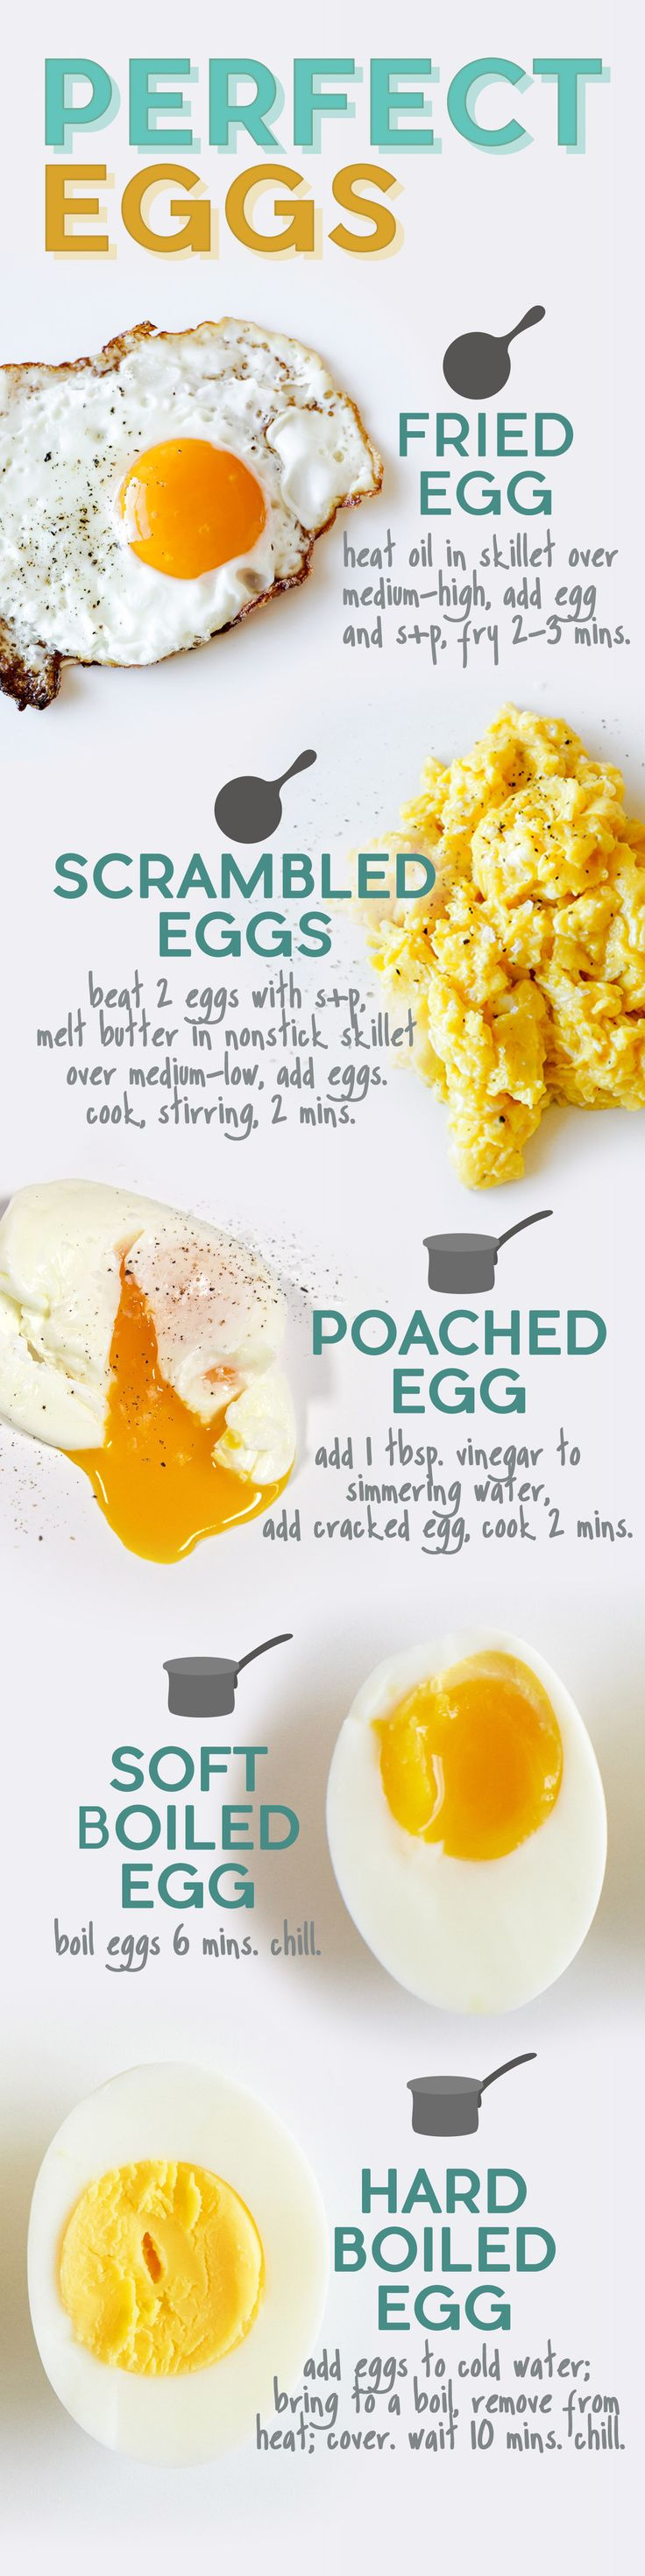 564 Best Images About Eggs On Pinterest  Perfect Hard Boiled Eggs, Perfect  Fried Egg And Scrambled Eggs